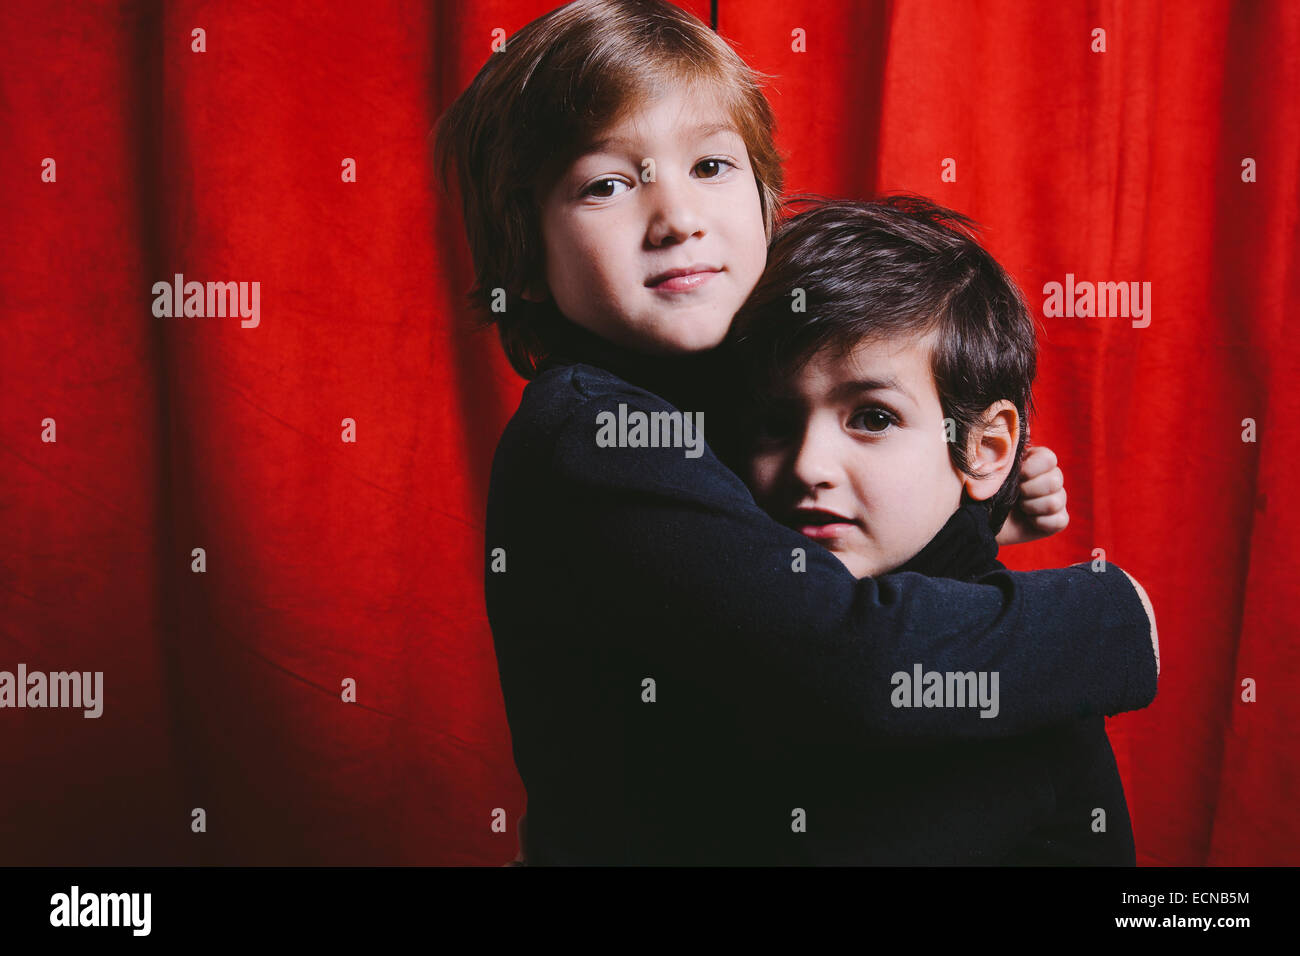 Two boys wearing black clothes on a hug - Stock Image